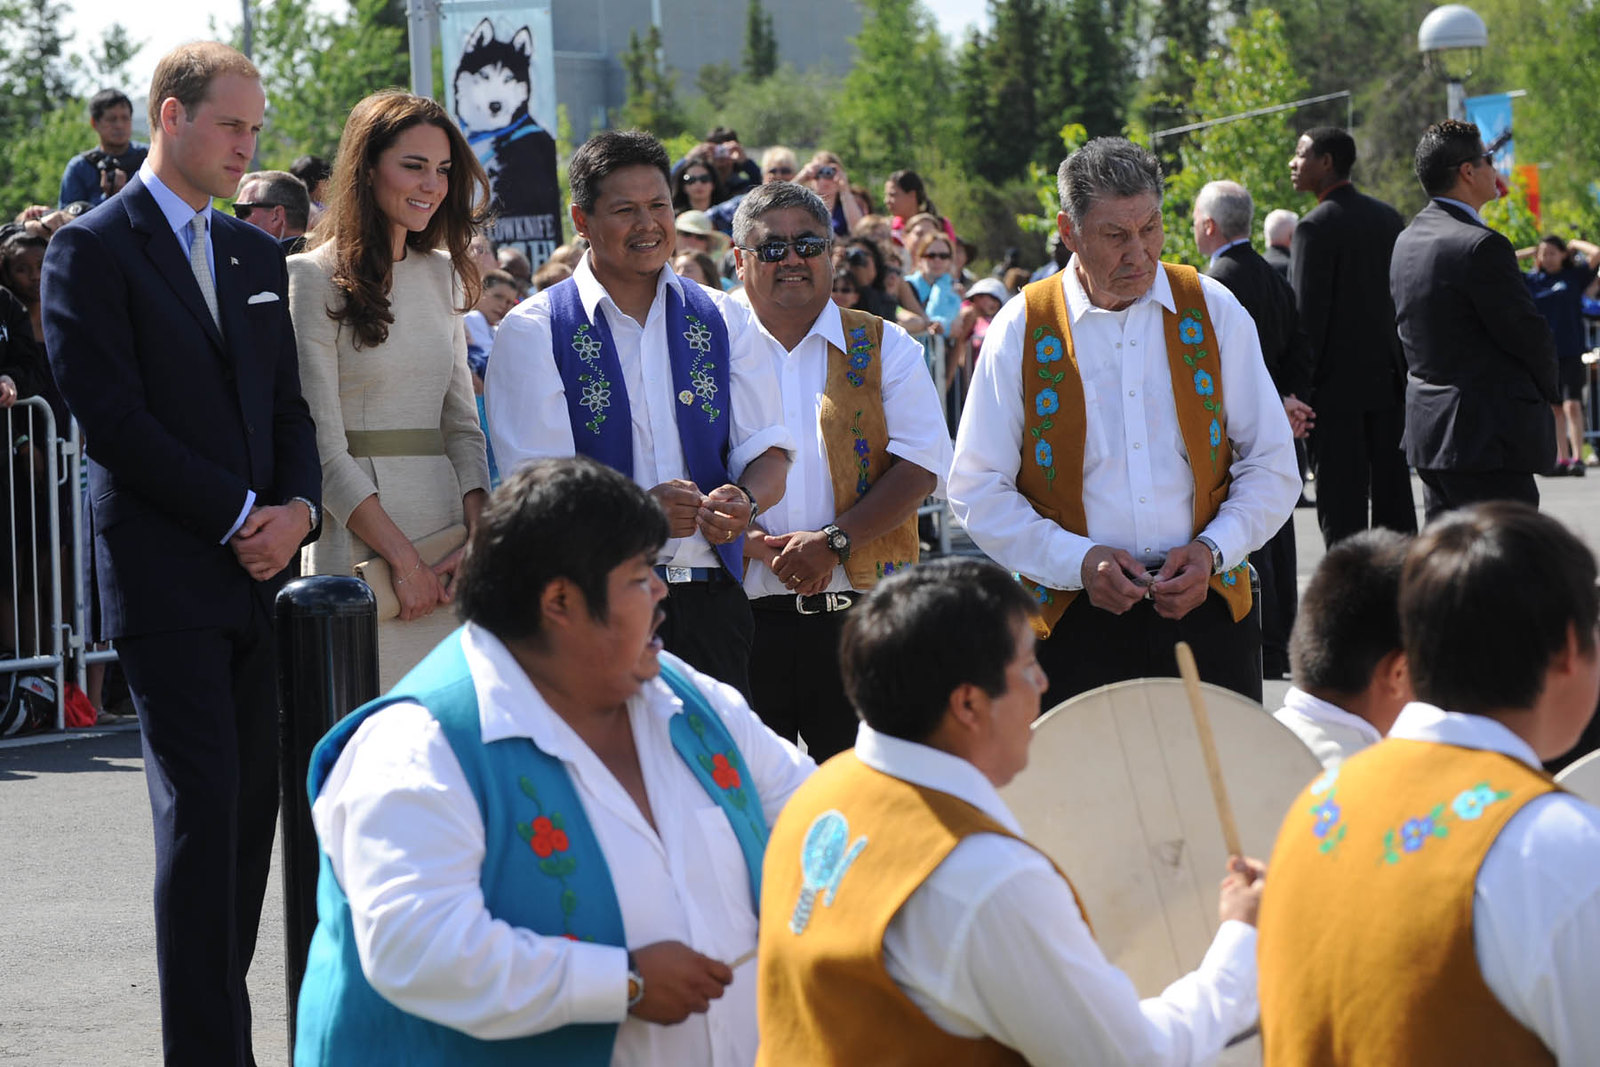 The Duke and Duchess of Cambridge watched drum performance during welcome ceremony in canada 2011